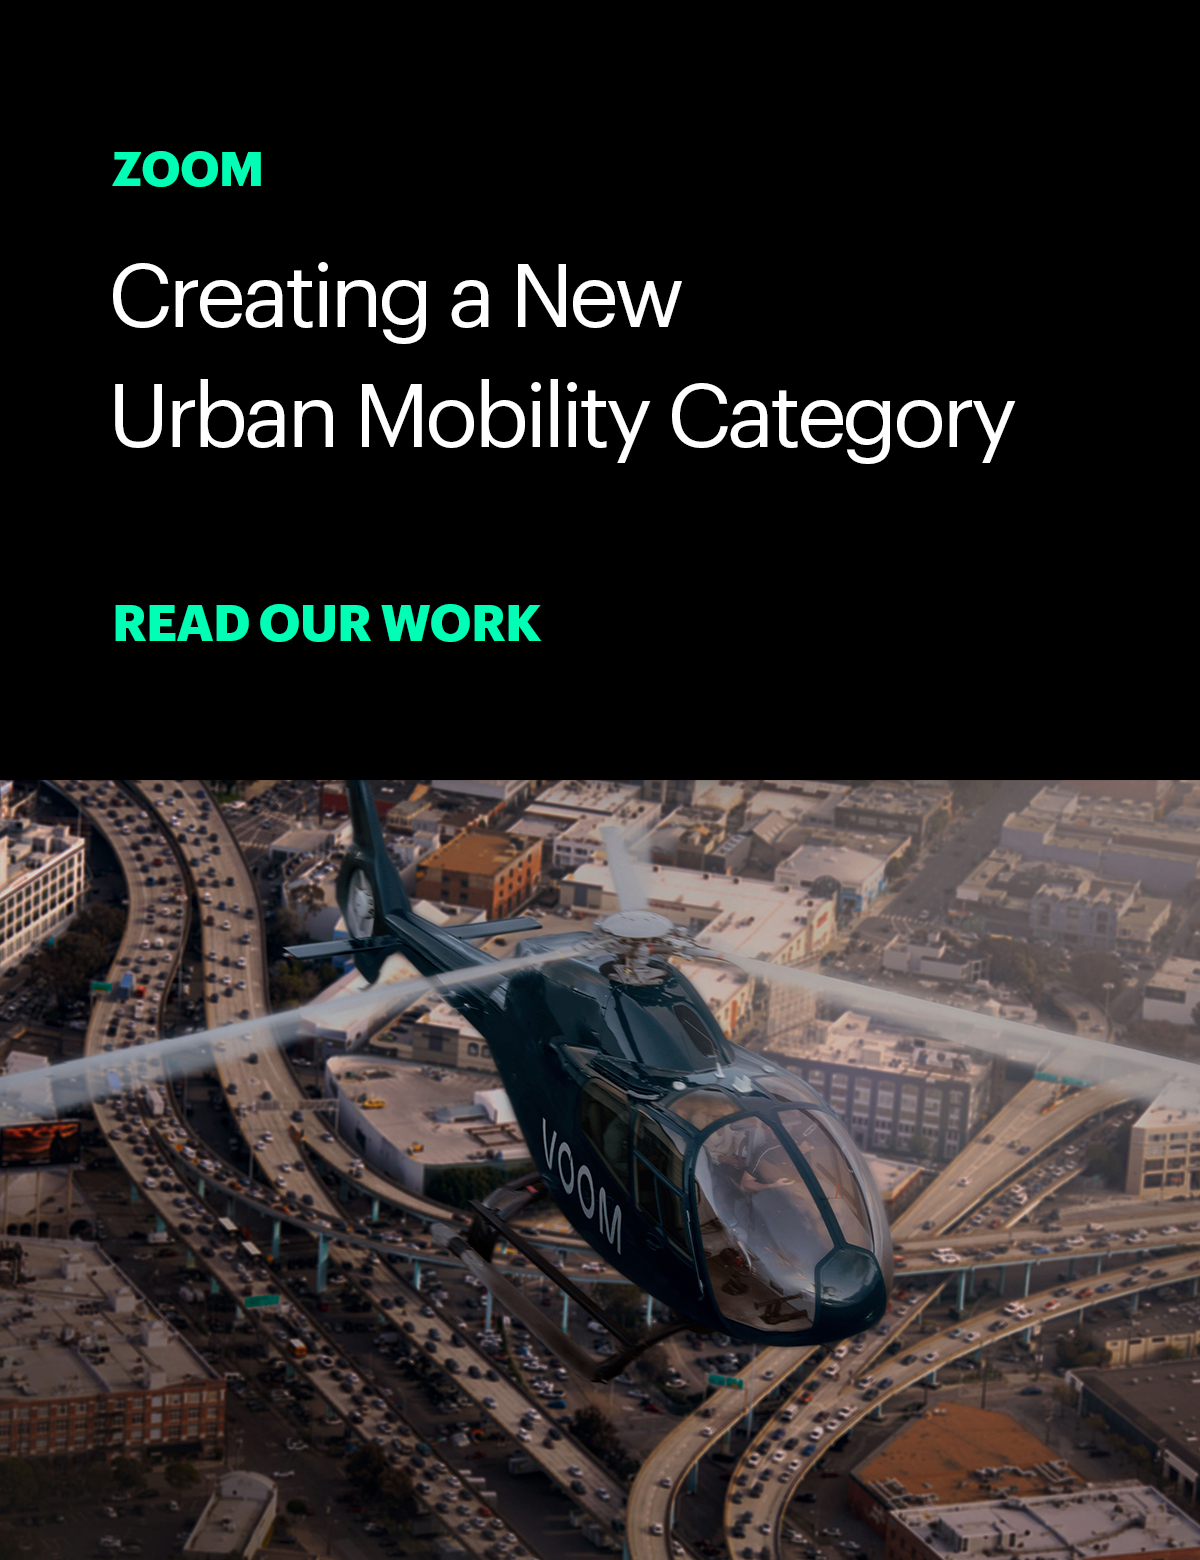 Zoom: Creating a new urban mobility category